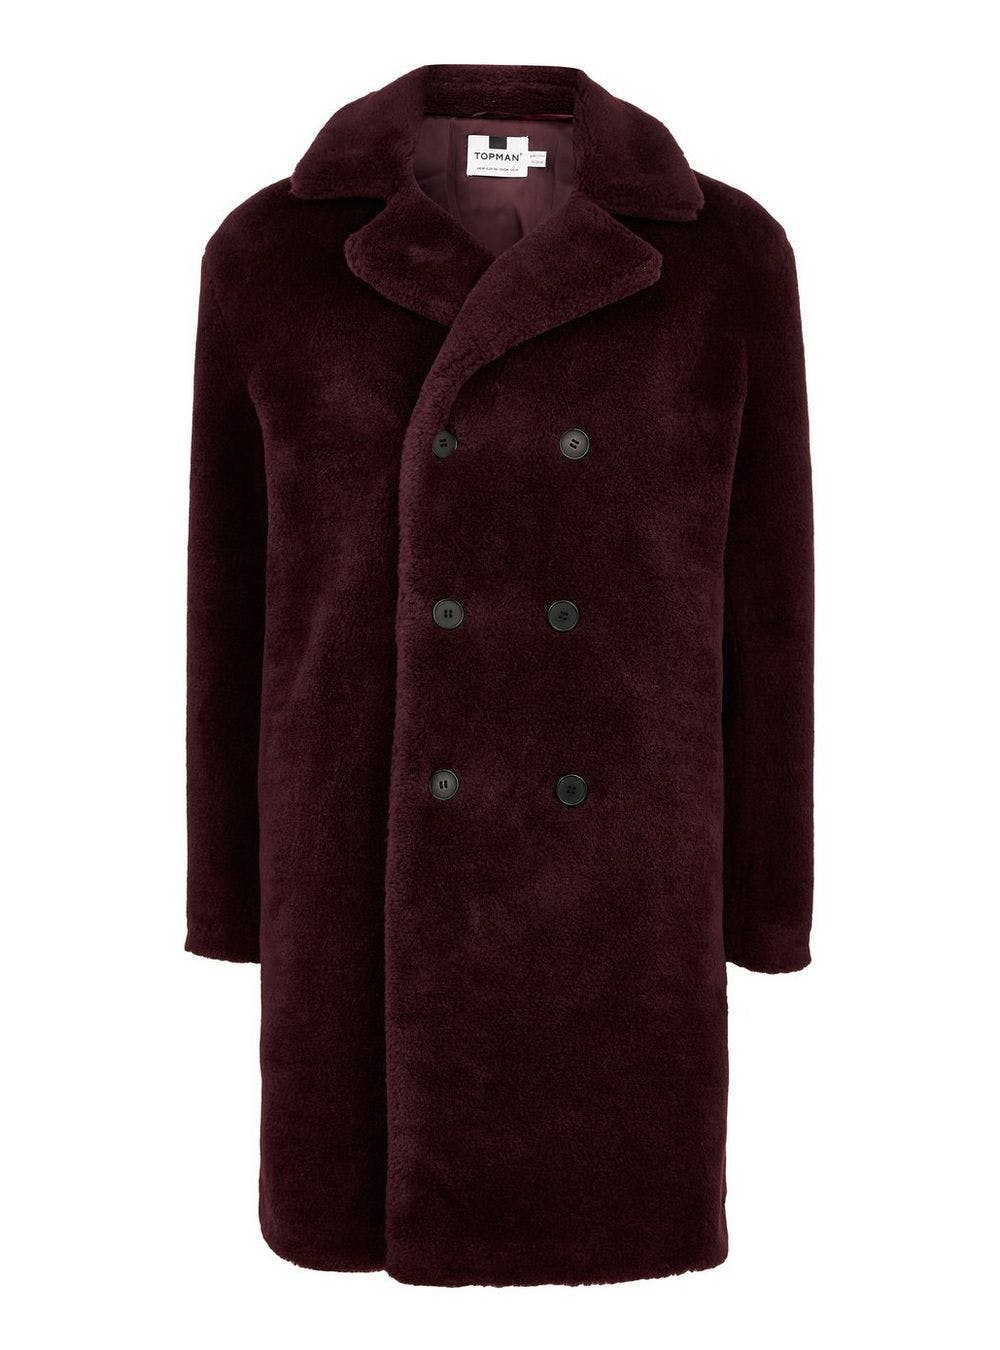 TOPMAN Berry Faux Fur Double Breasted Jacket.